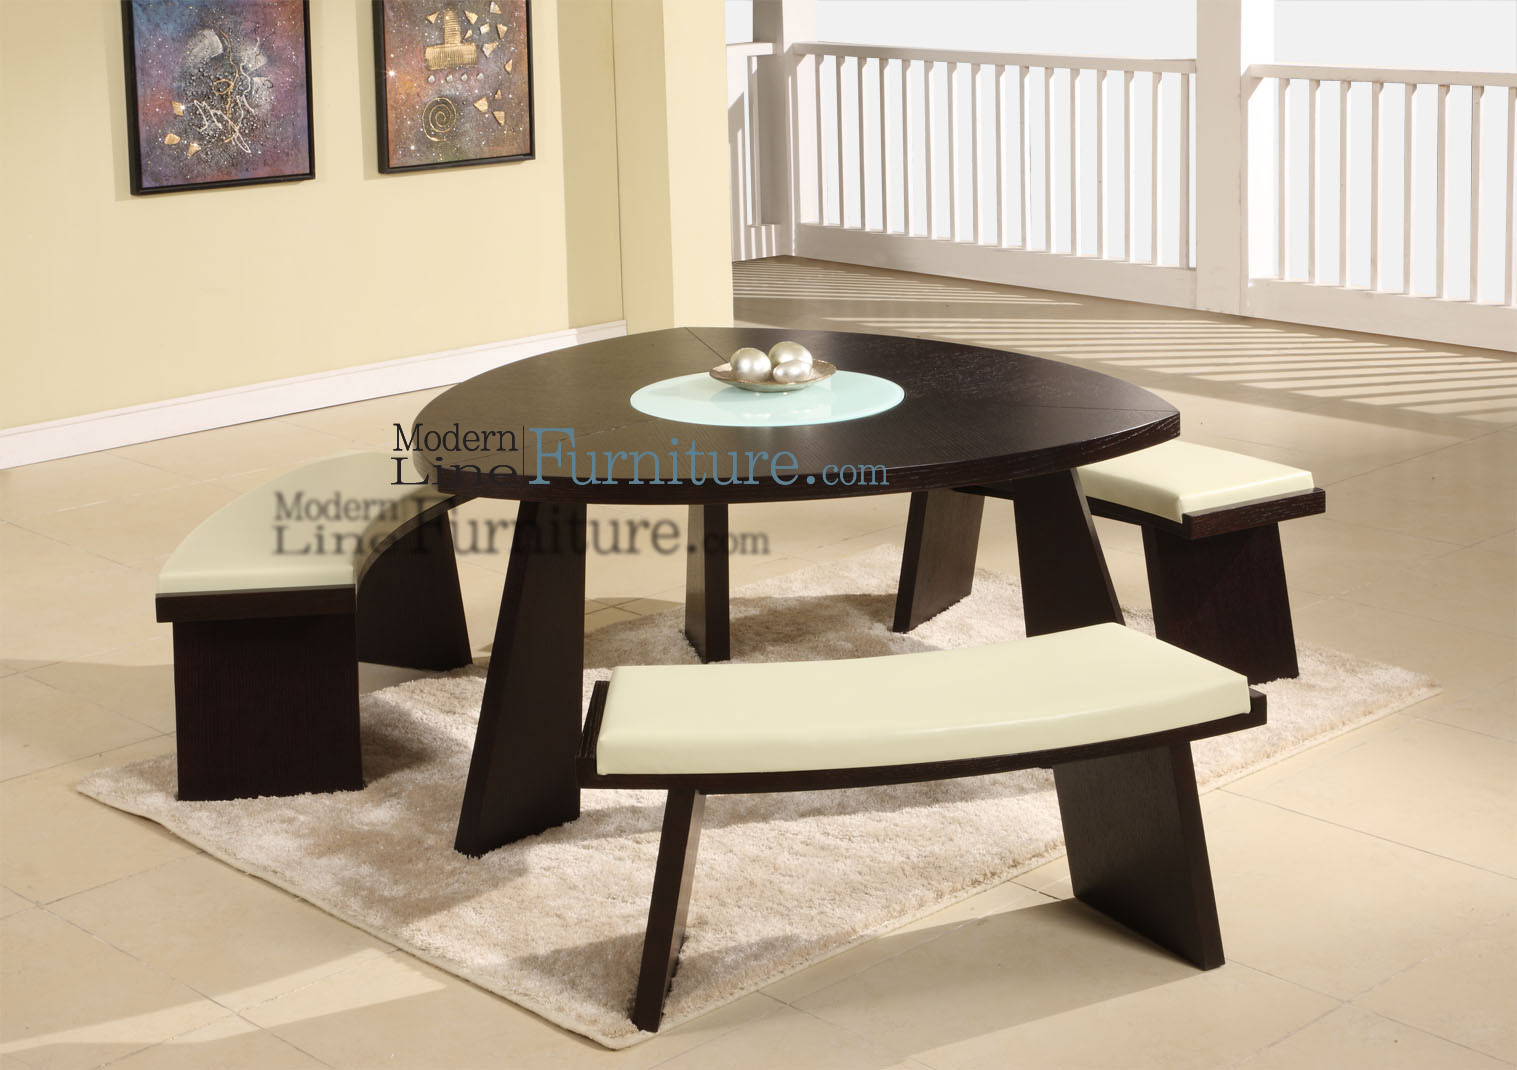 Modern Line Furniture - Commercial Furniture - Custom Made Furniture |  Modern Triangular Dining Table with a Swivel Mid-Glass, comes with 3 Beige  ... - Modern Line Furniture - Commercial Furniture - Custom Made